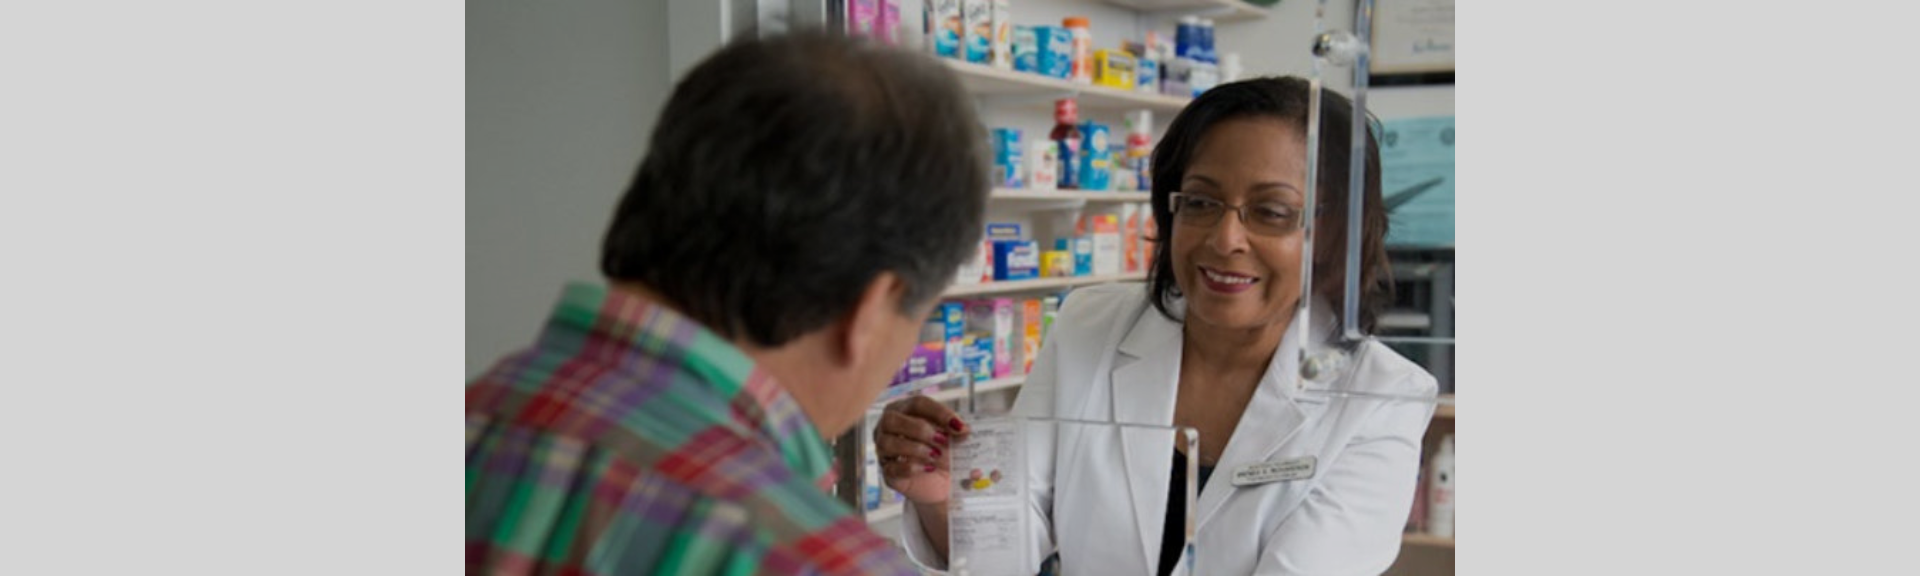 female pharmacist with customer